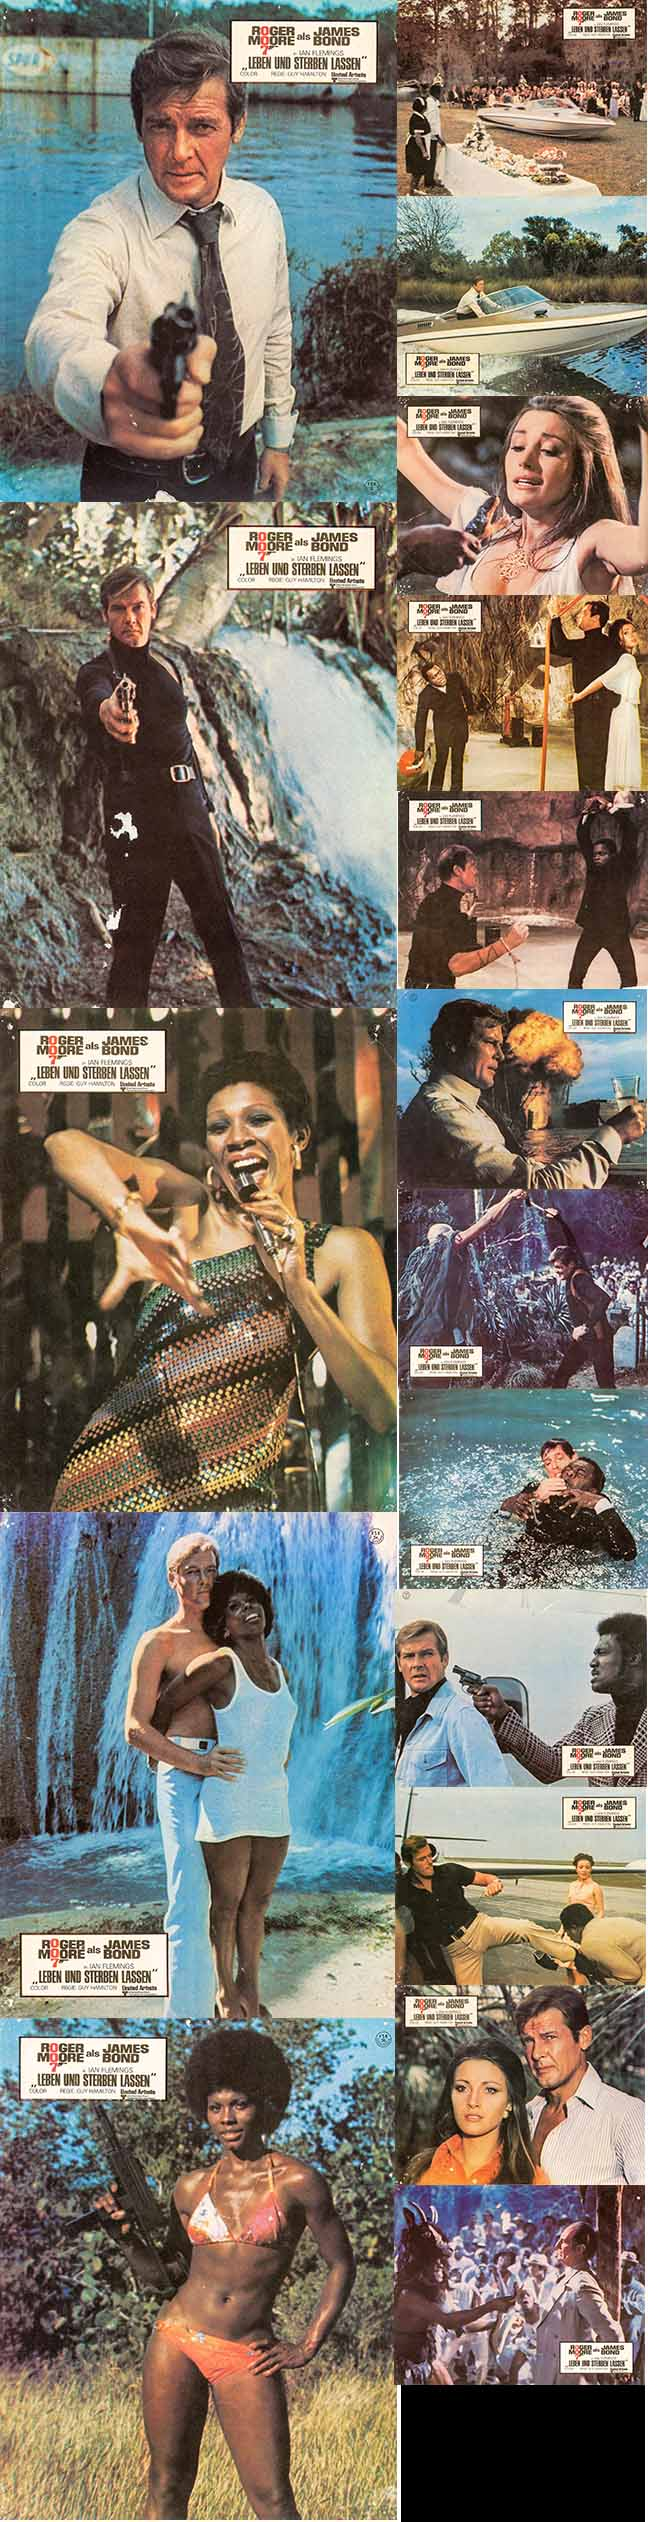 Pictured are 17 German 8x12 lobby cards made to promote the 1973 Guy Hamilton film Live and Let Die starring Roger Moore as James Bond.